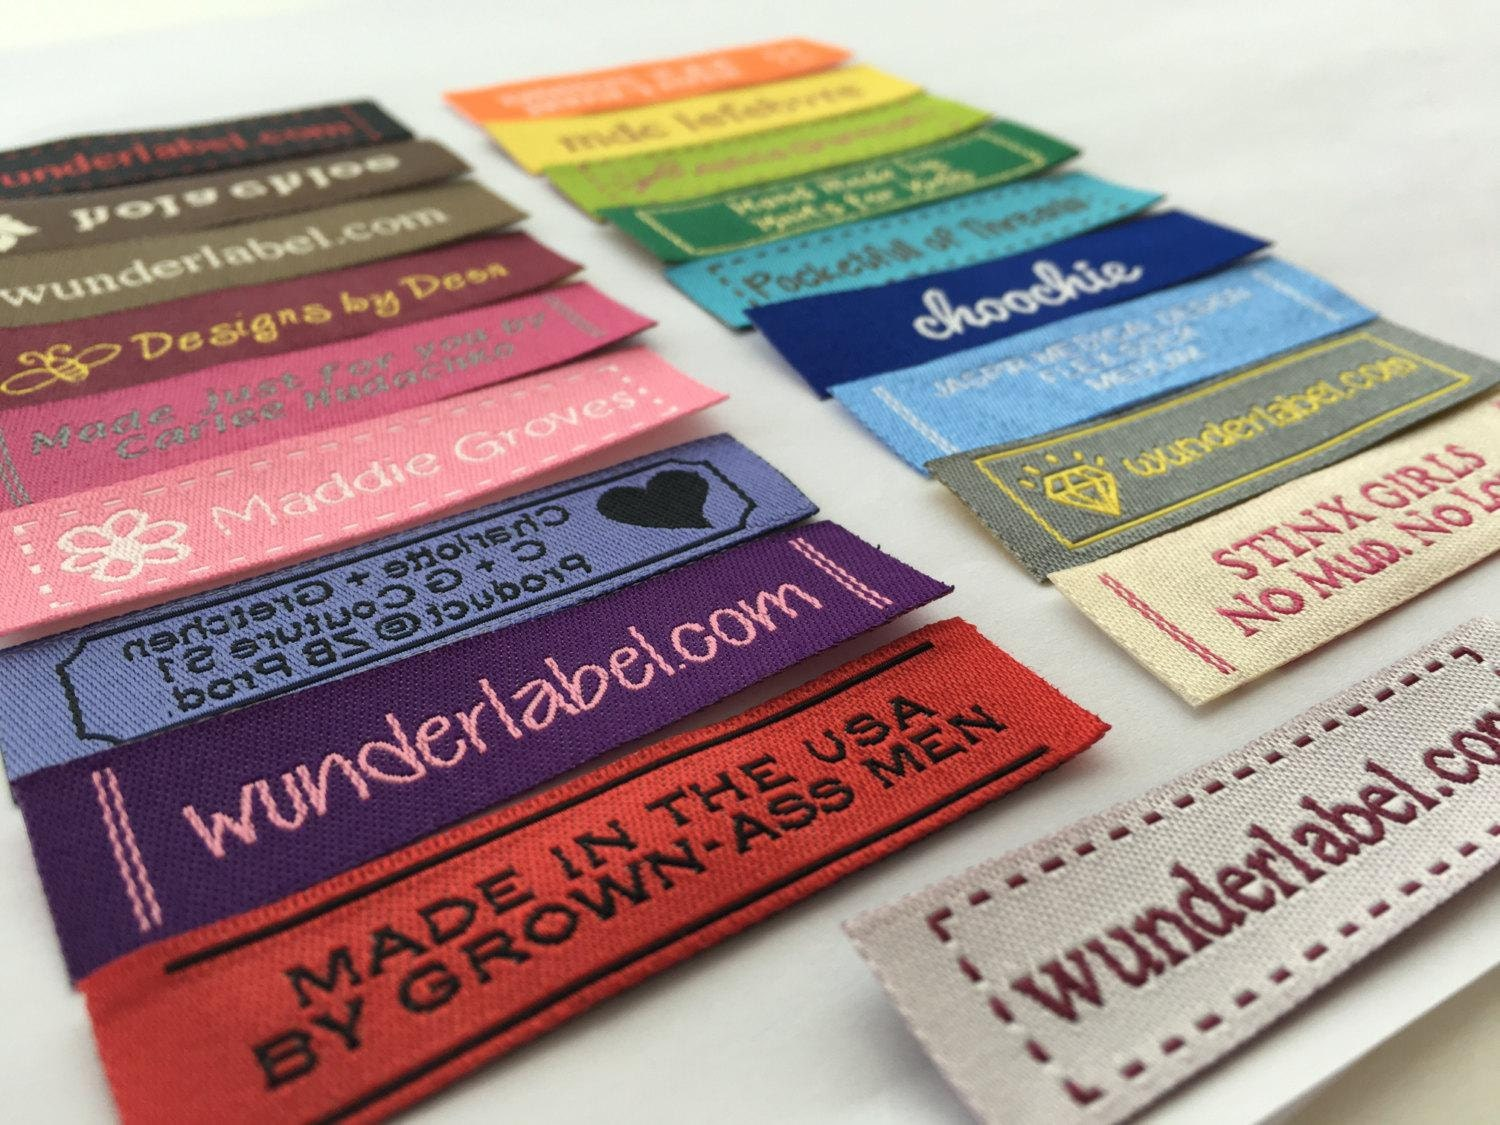 Labels: Fabric Tag Labels Woven Frame Text & Symbol Only 20 USD